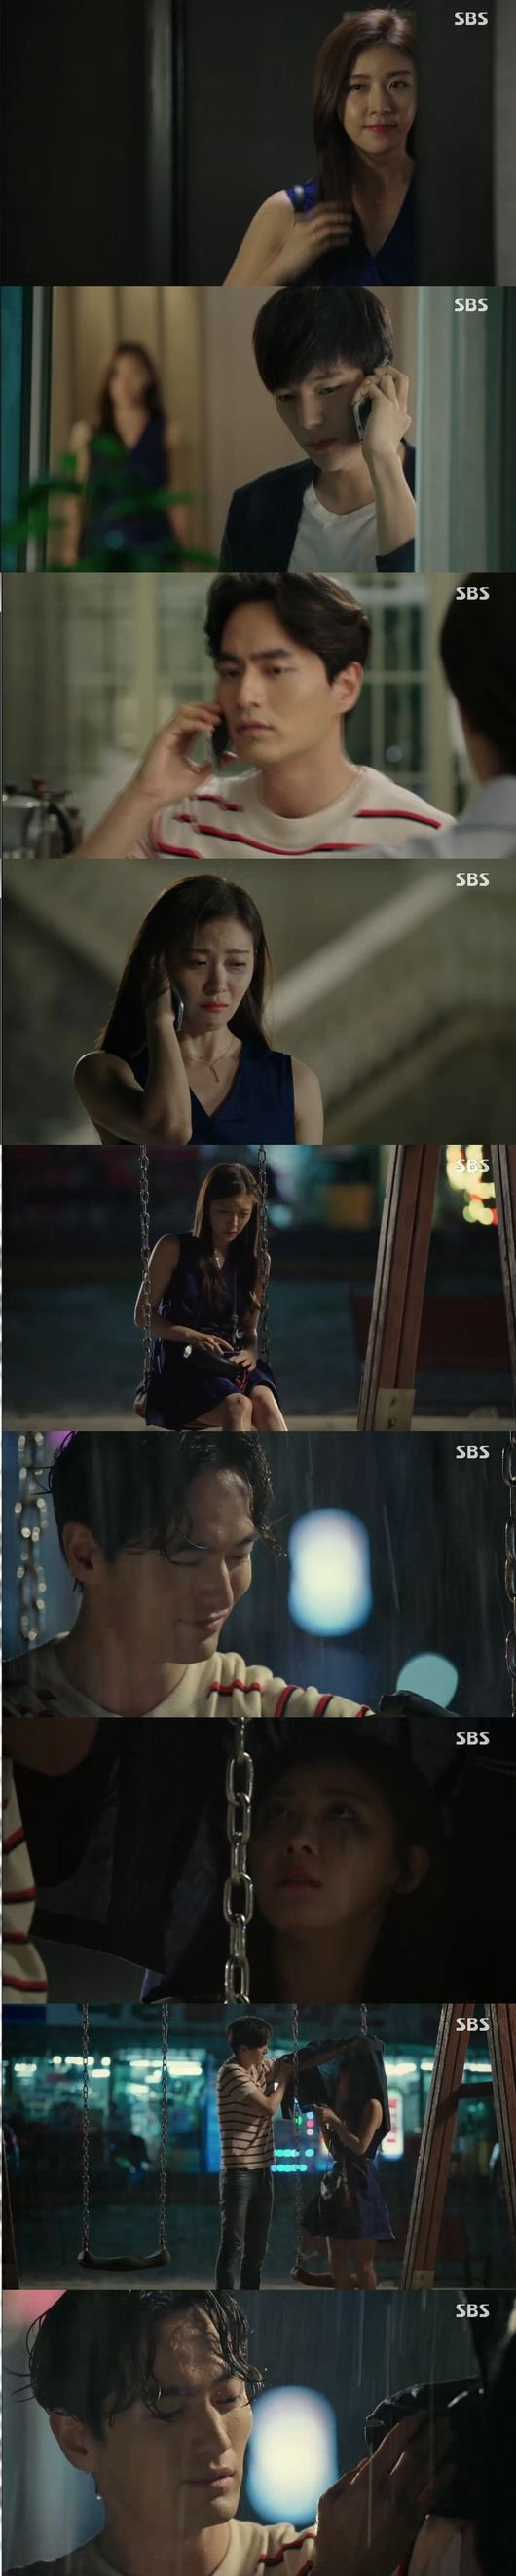 Spoiler] 'The Time I Loved You' Ha Ji-won is betrayed by L and finds